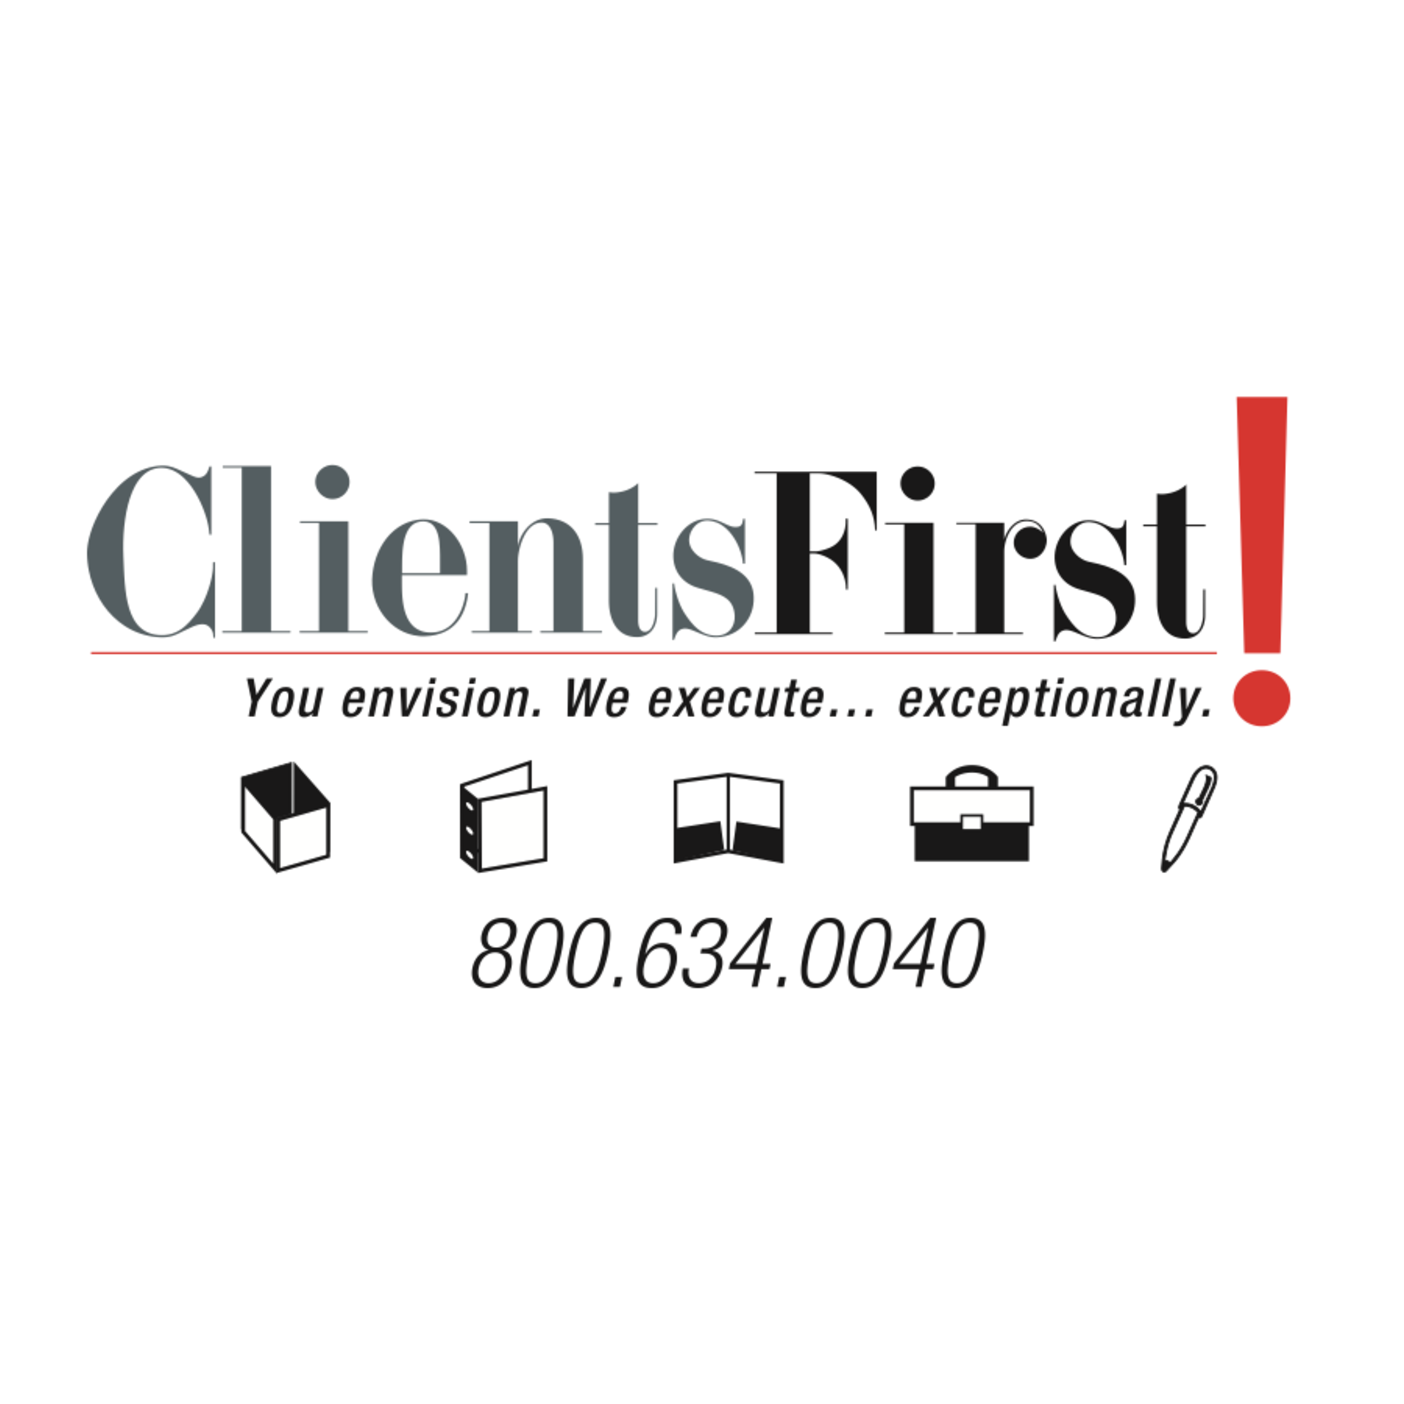 Clients First, Inc.